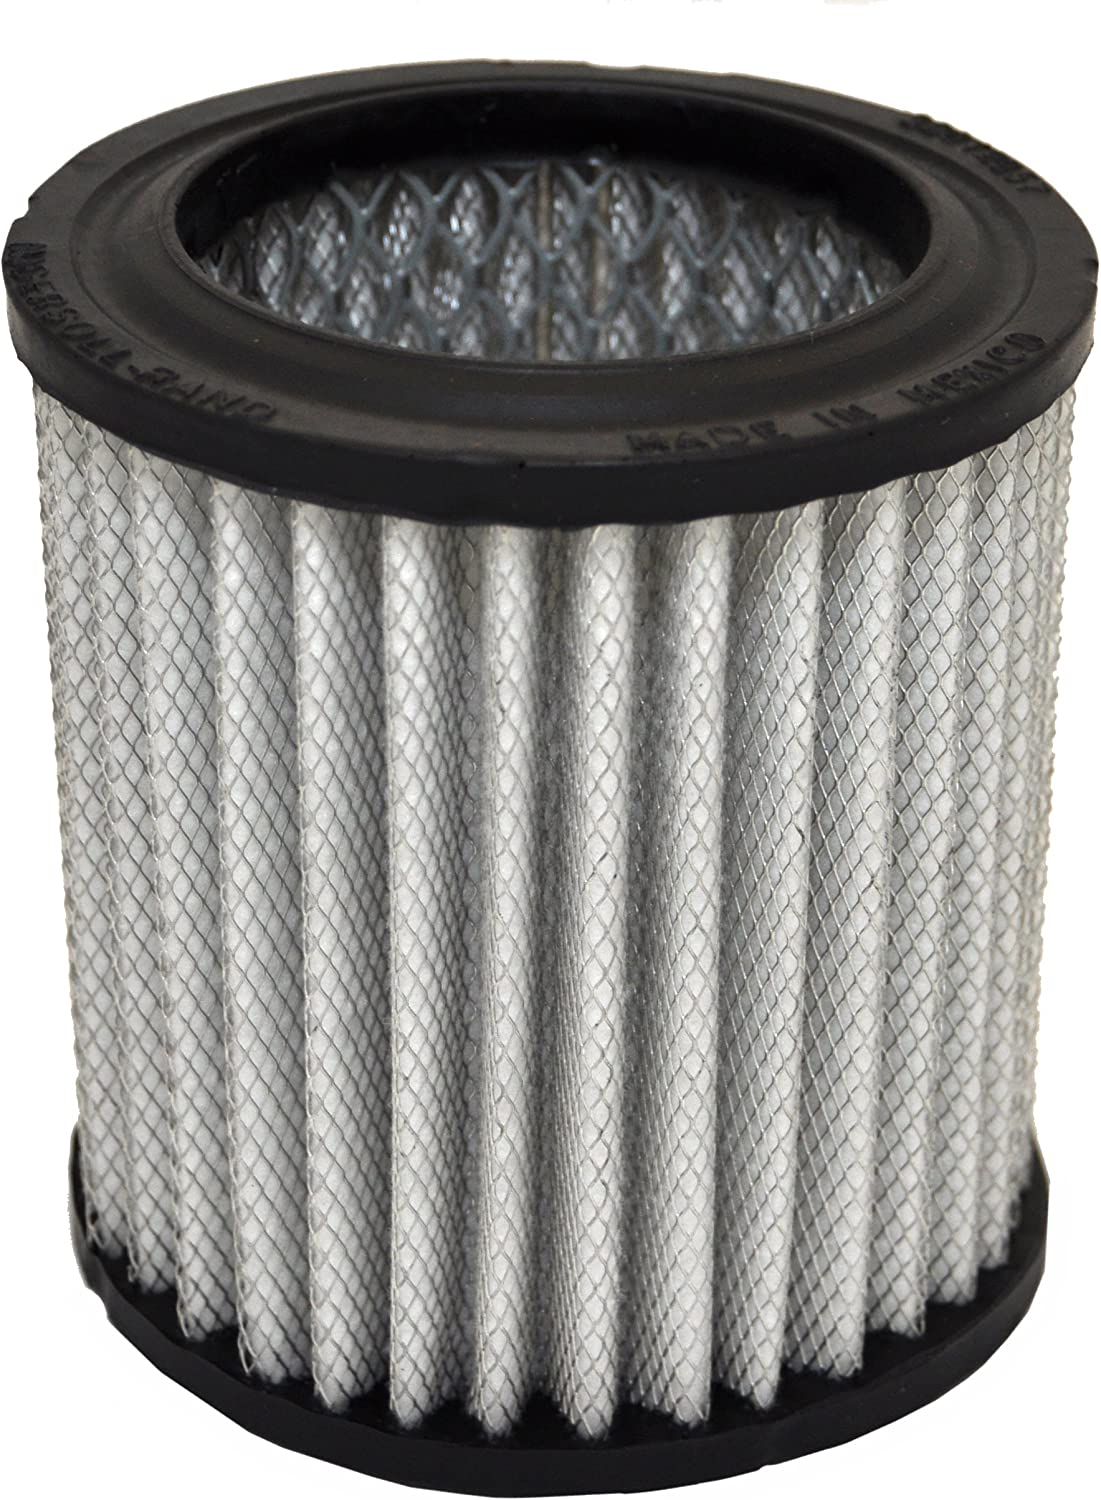 Ingersoll-Rand 22203095 Compatible Air Filter Element by Millennium-Filters